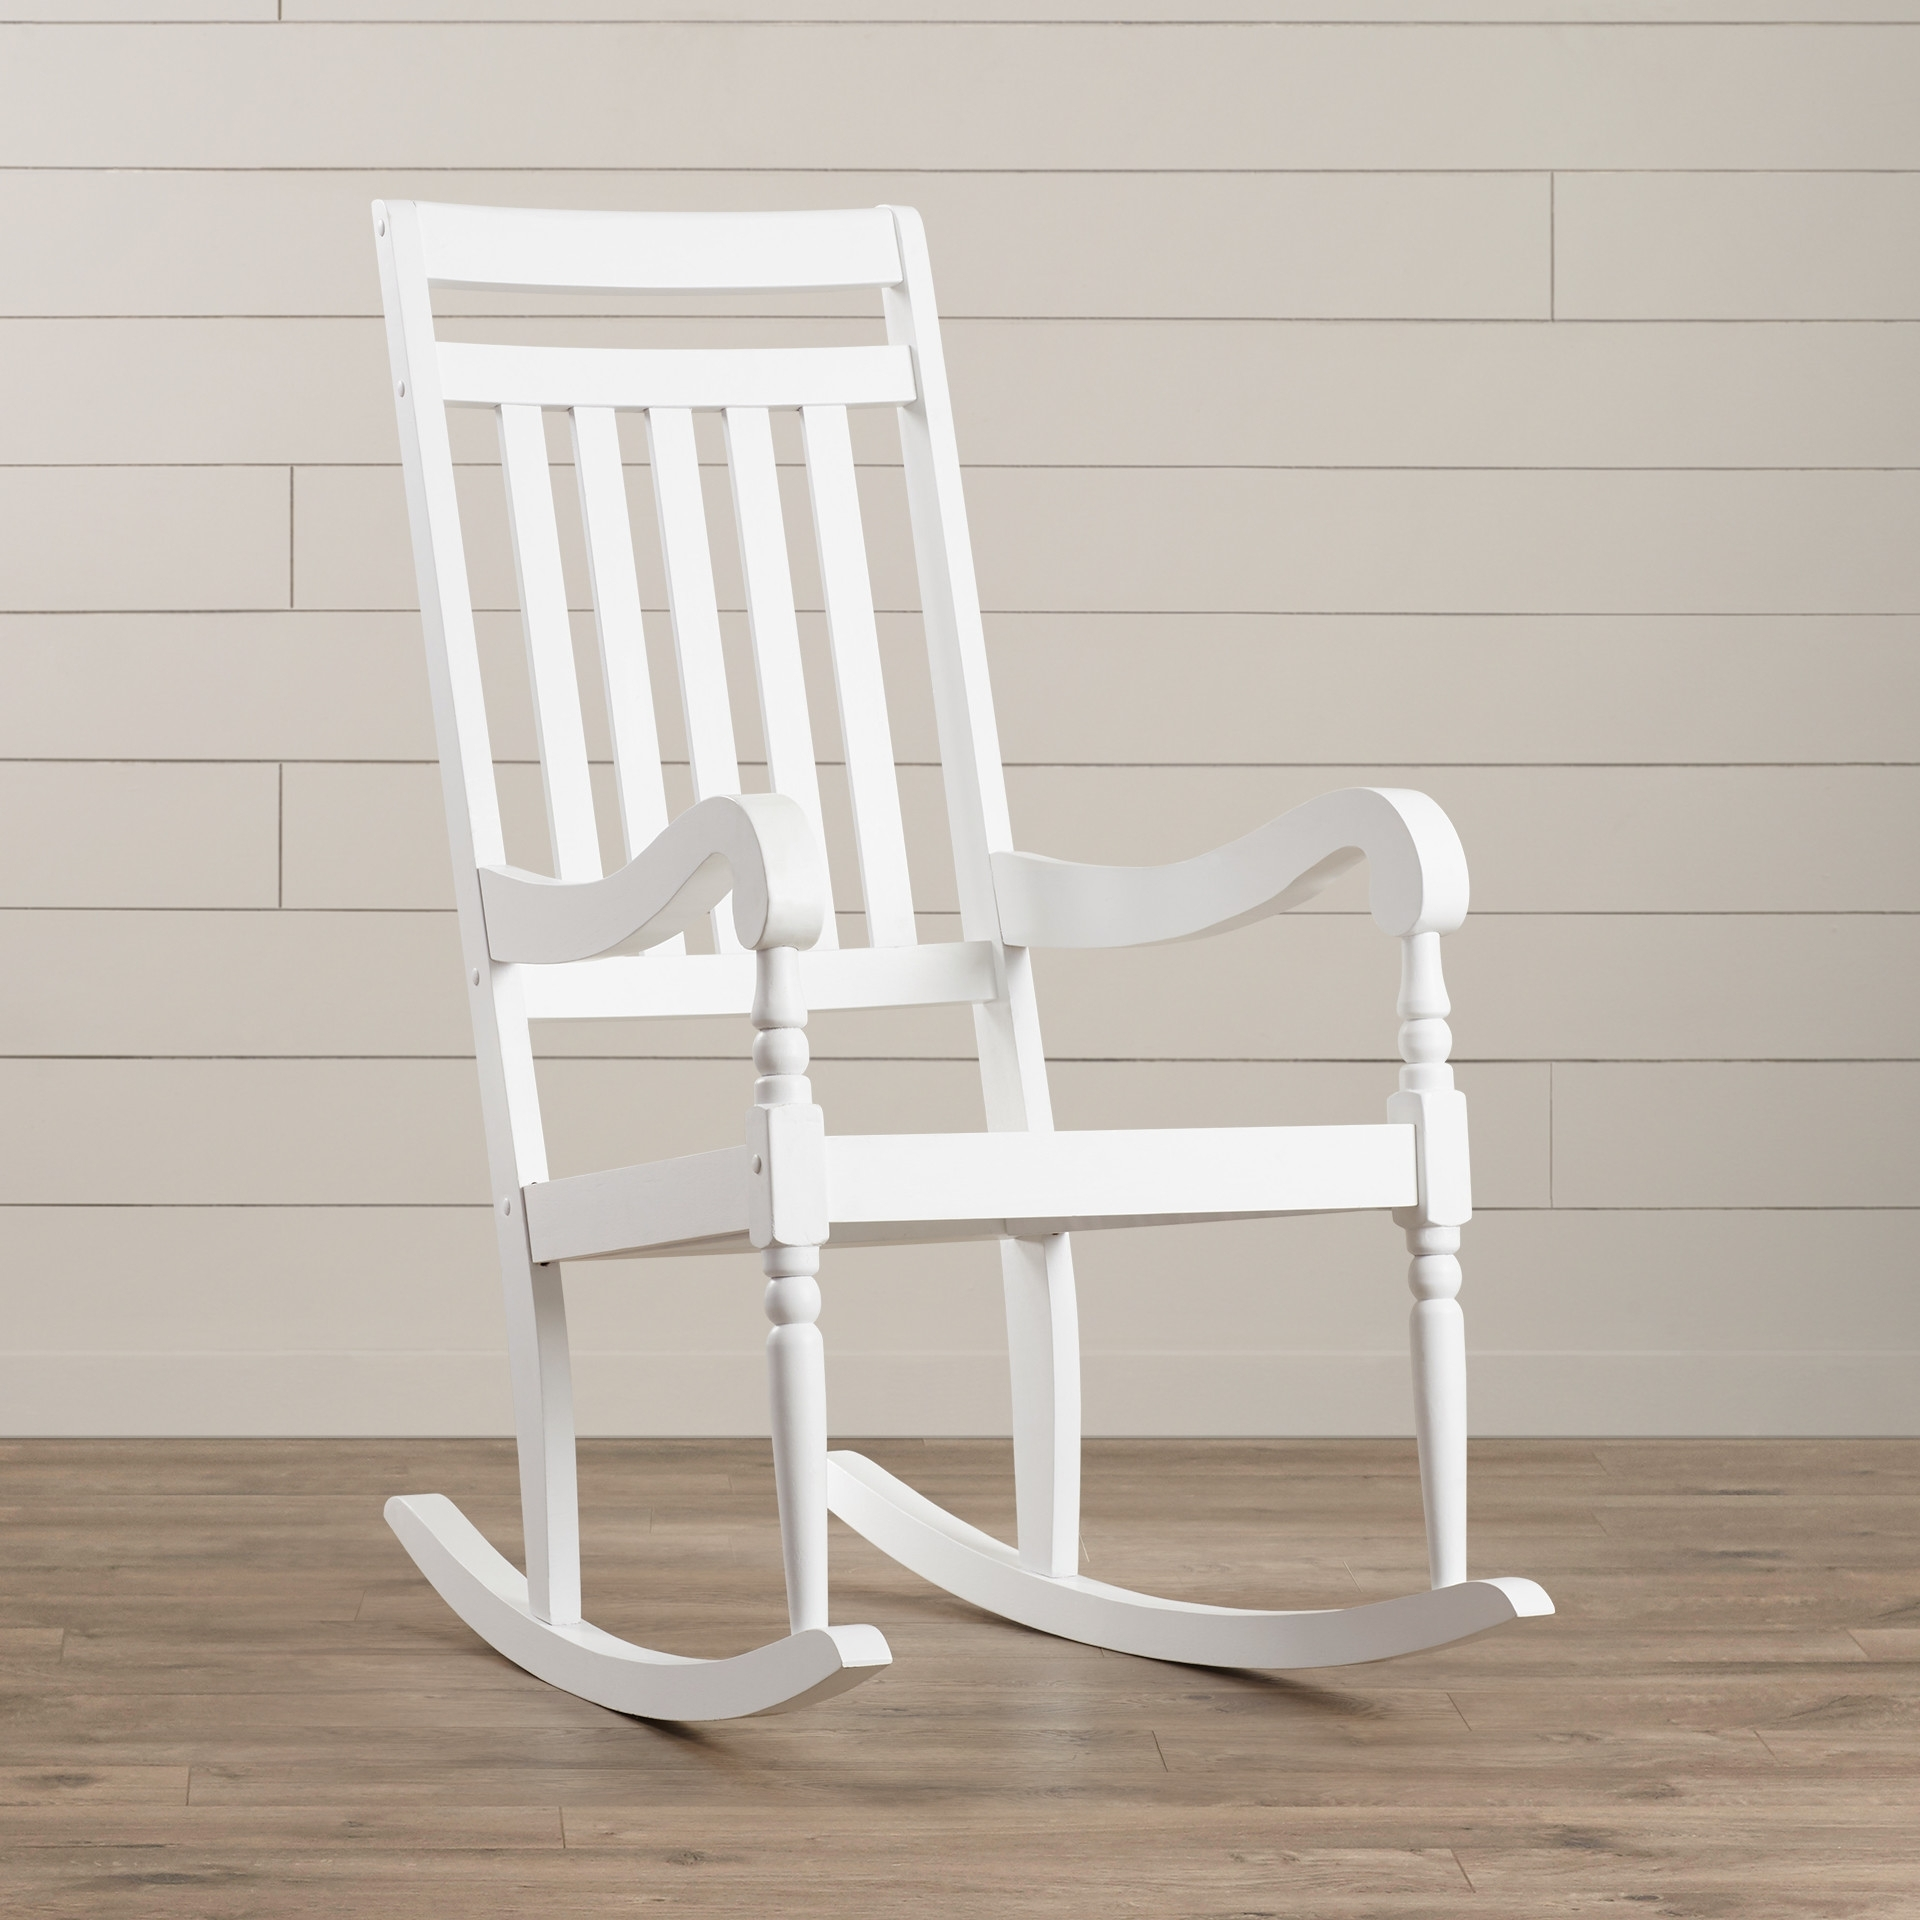 Rocking Chairs Wayfair Aileen Chair ~ Clipgoo With Well Known Rocking Chairs At Wayfair (View 7 of 20)